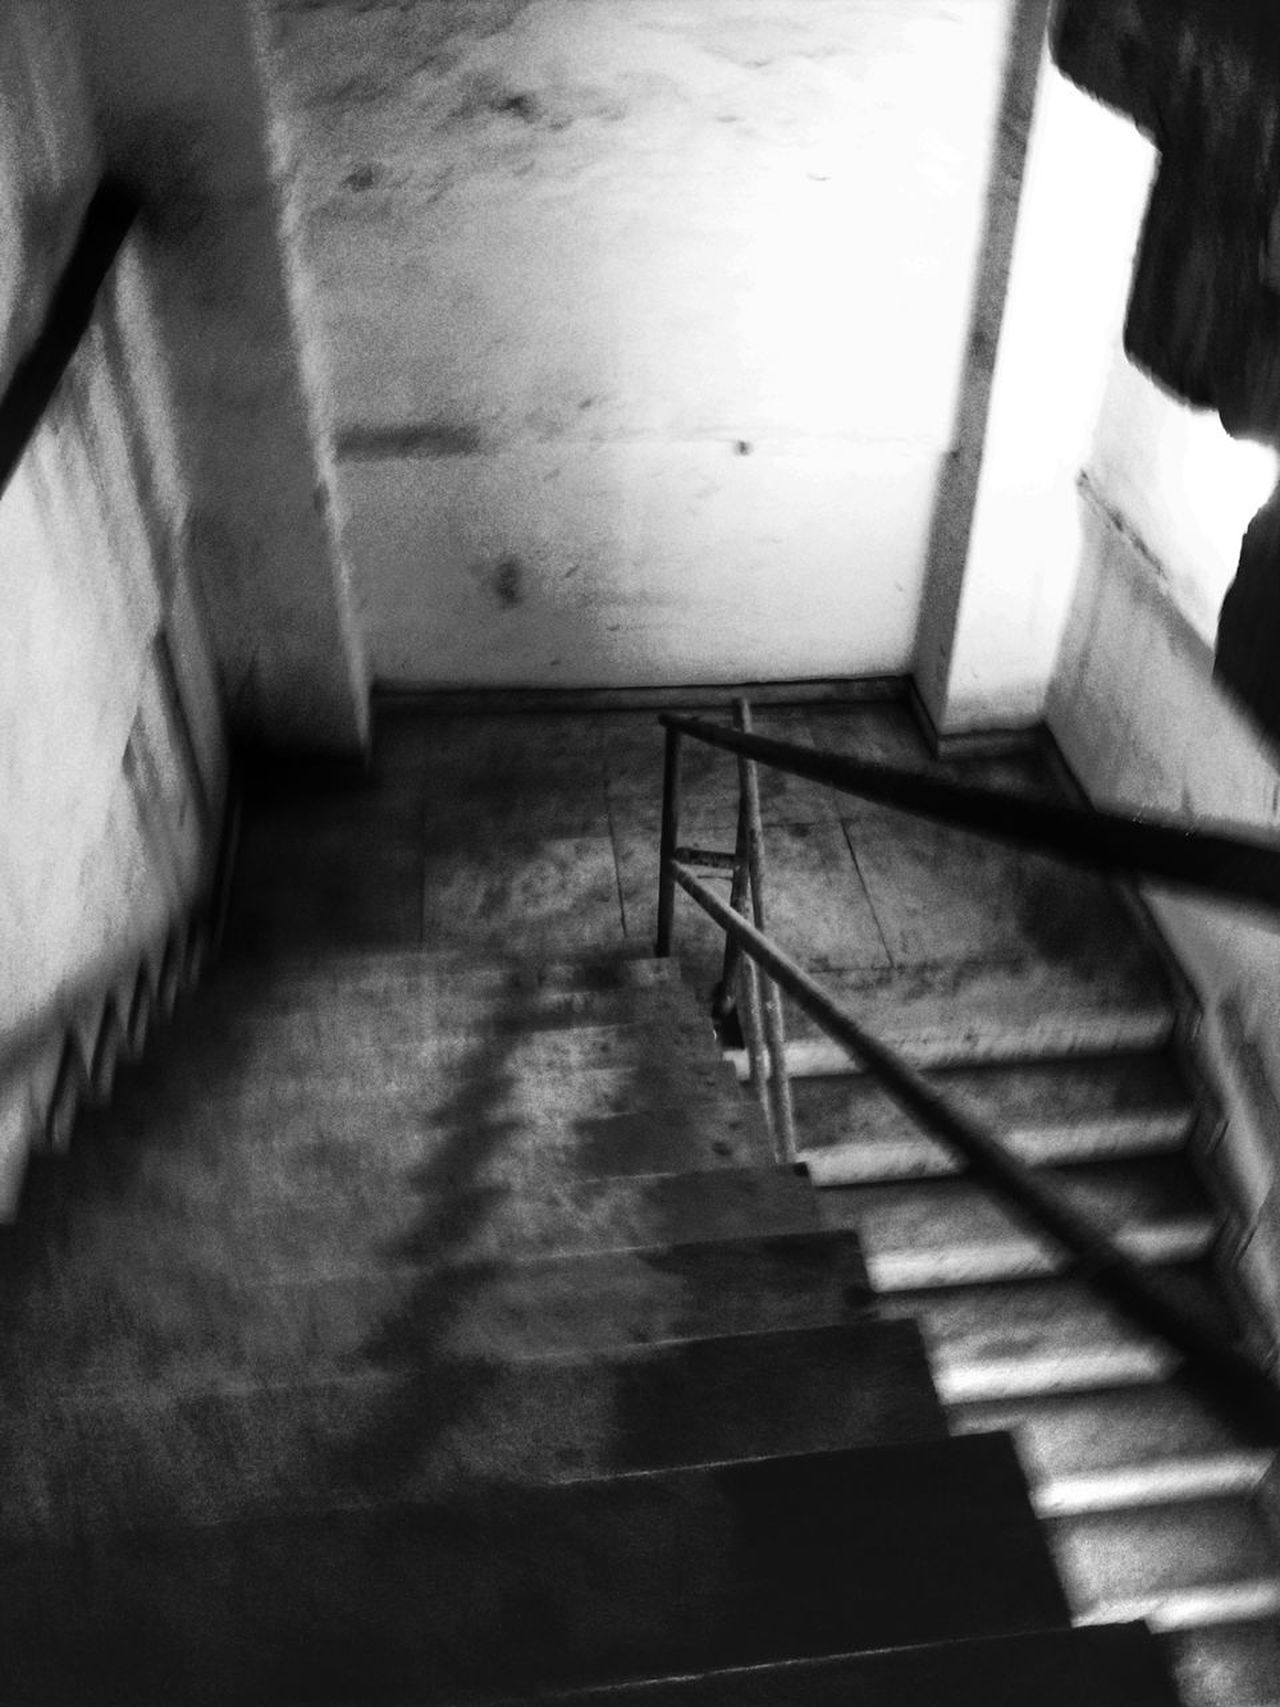 Staircase Steps Steps And Staircases Indoors  Railing Stairs Architecture Day No People Hand Rail Monochrome Black & White Bnw Shadow Indoors  Built Structure TheWeek On EyEem Blackandwhite Indoors  Architecture